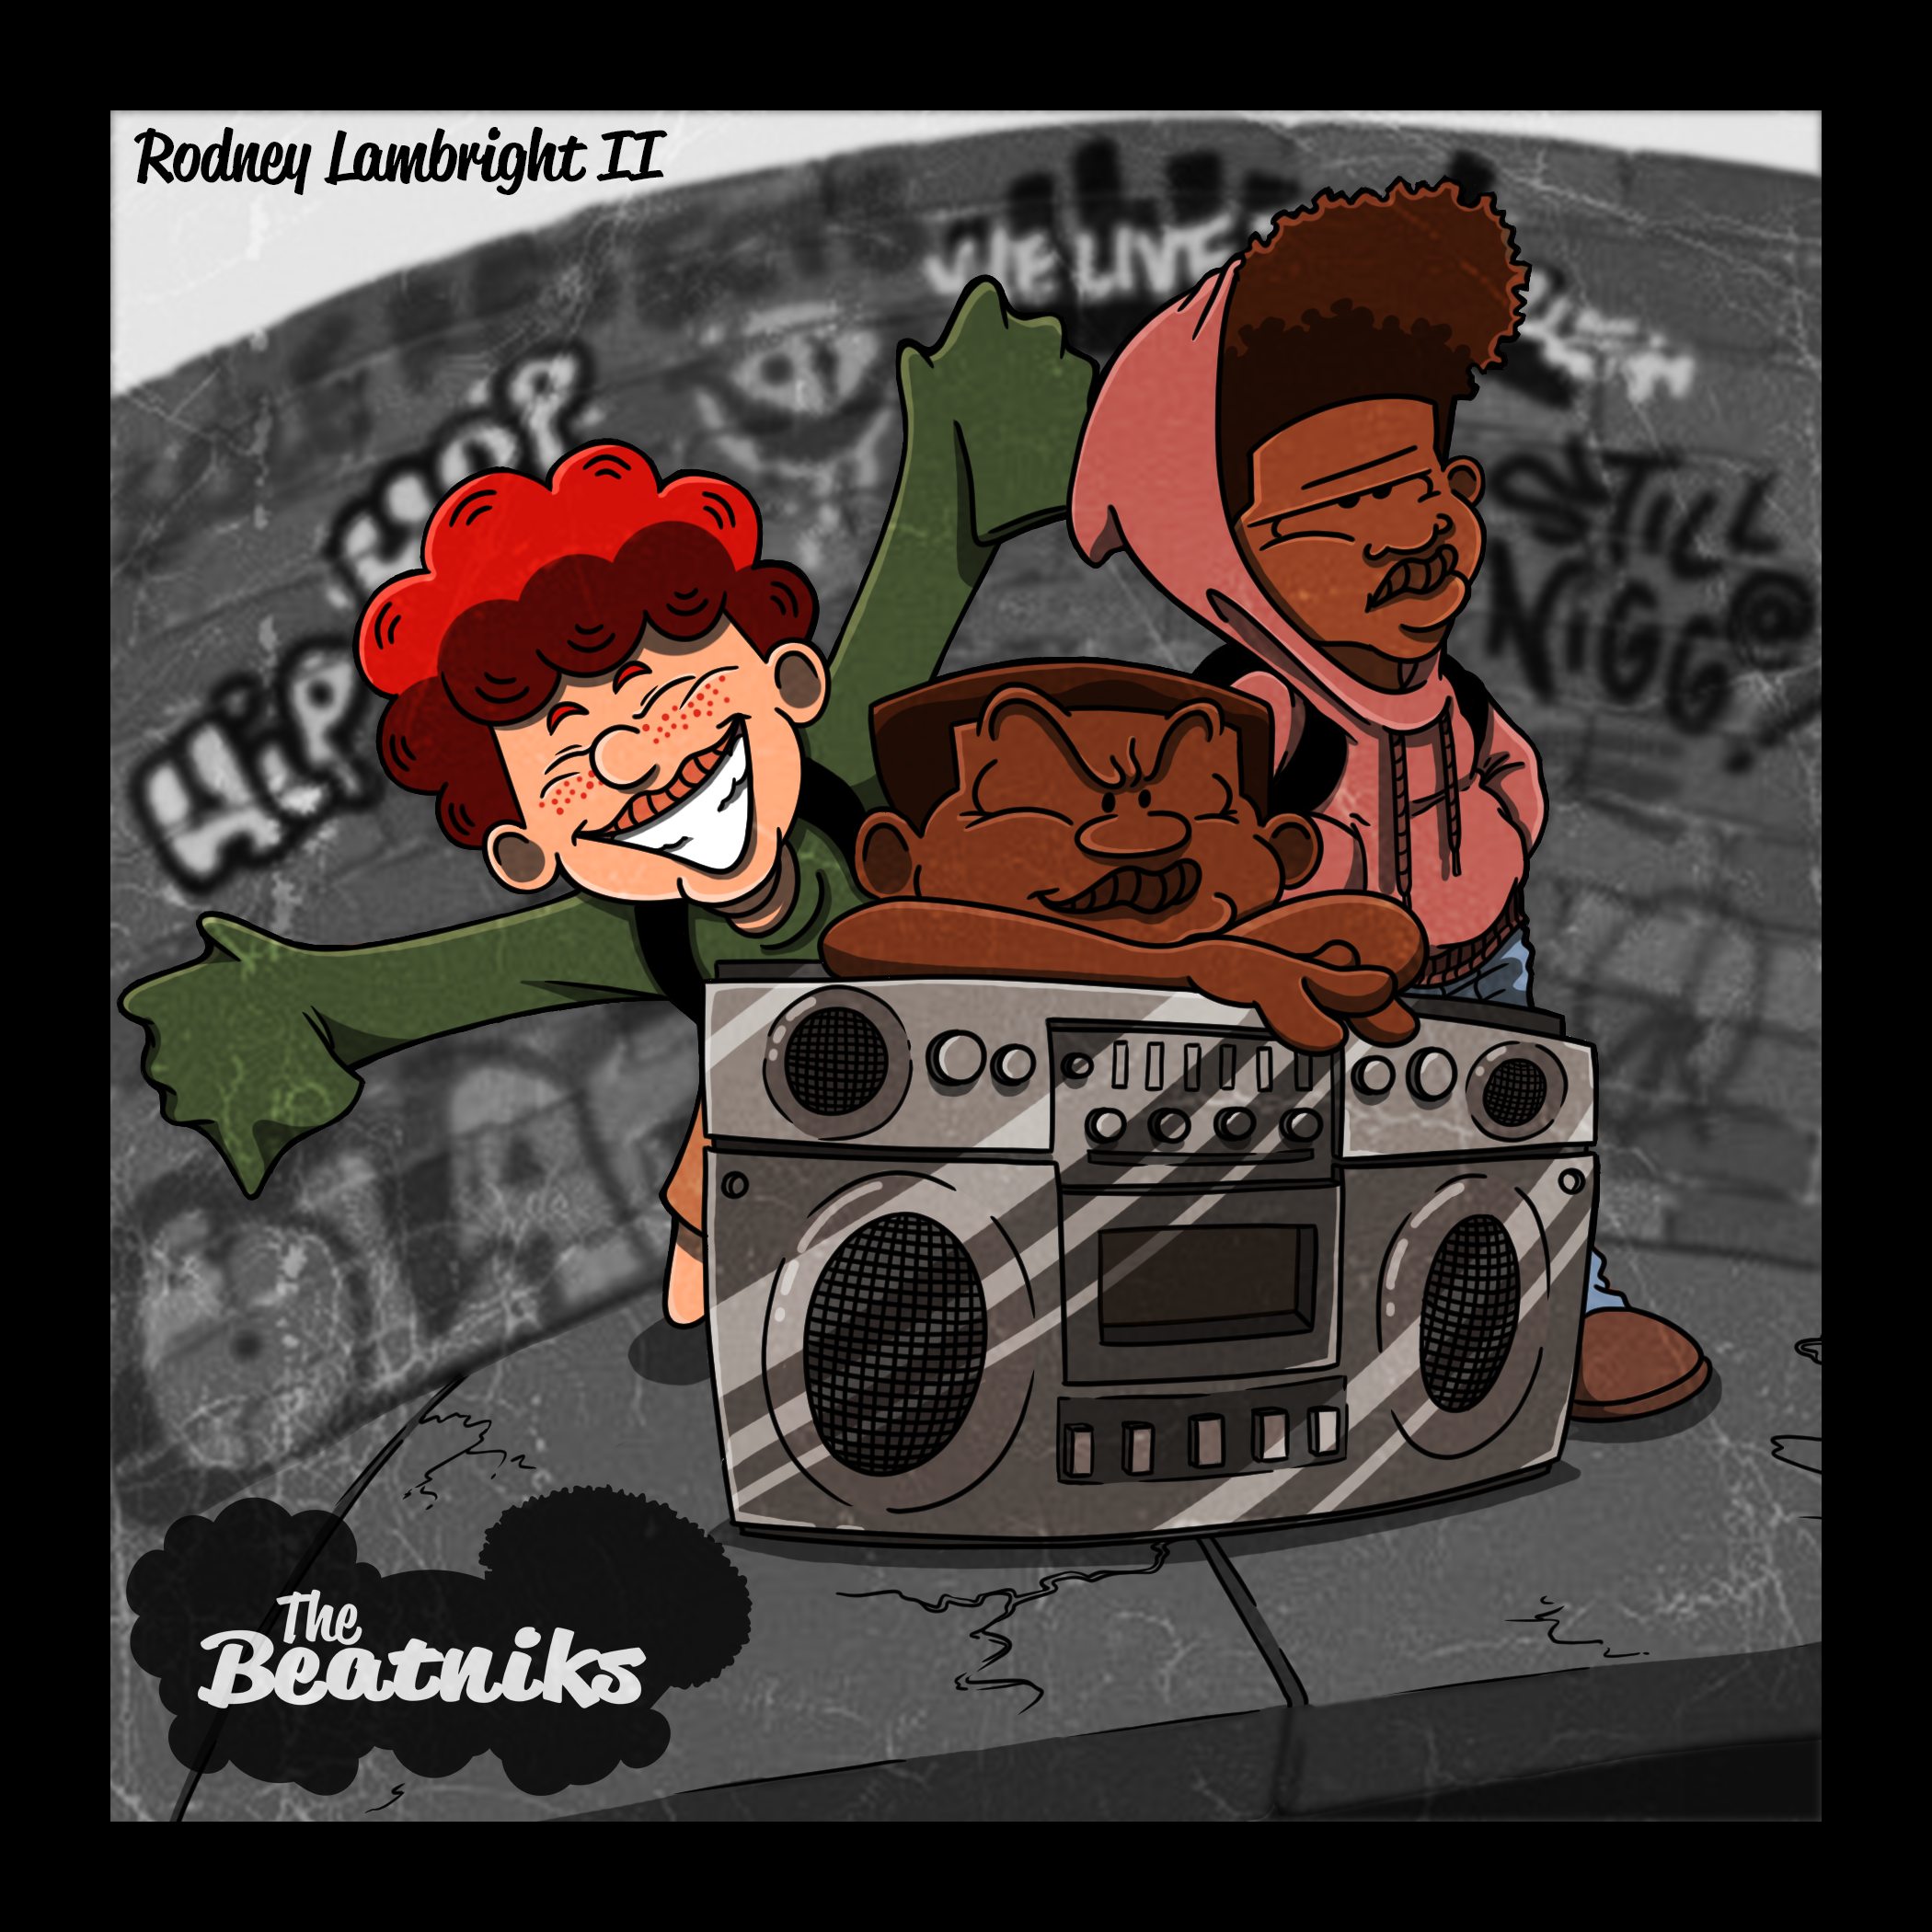 The Beatniks Promo image